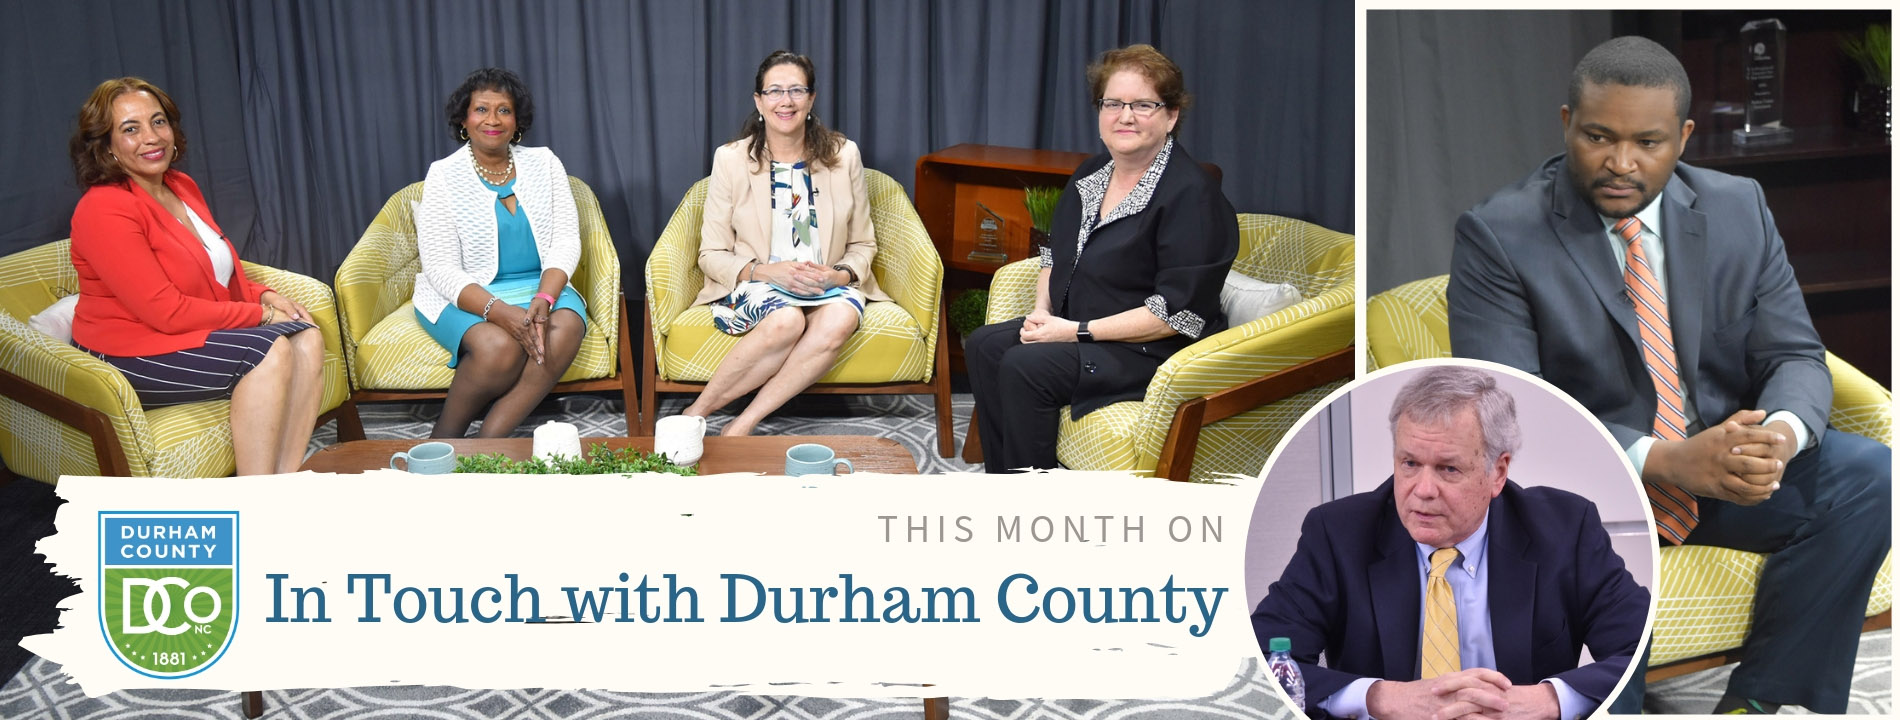 In Touch With Durham County promo with hosts, Pre-K representatives at table, Board of Elections Chair and Director of Durham County Elections